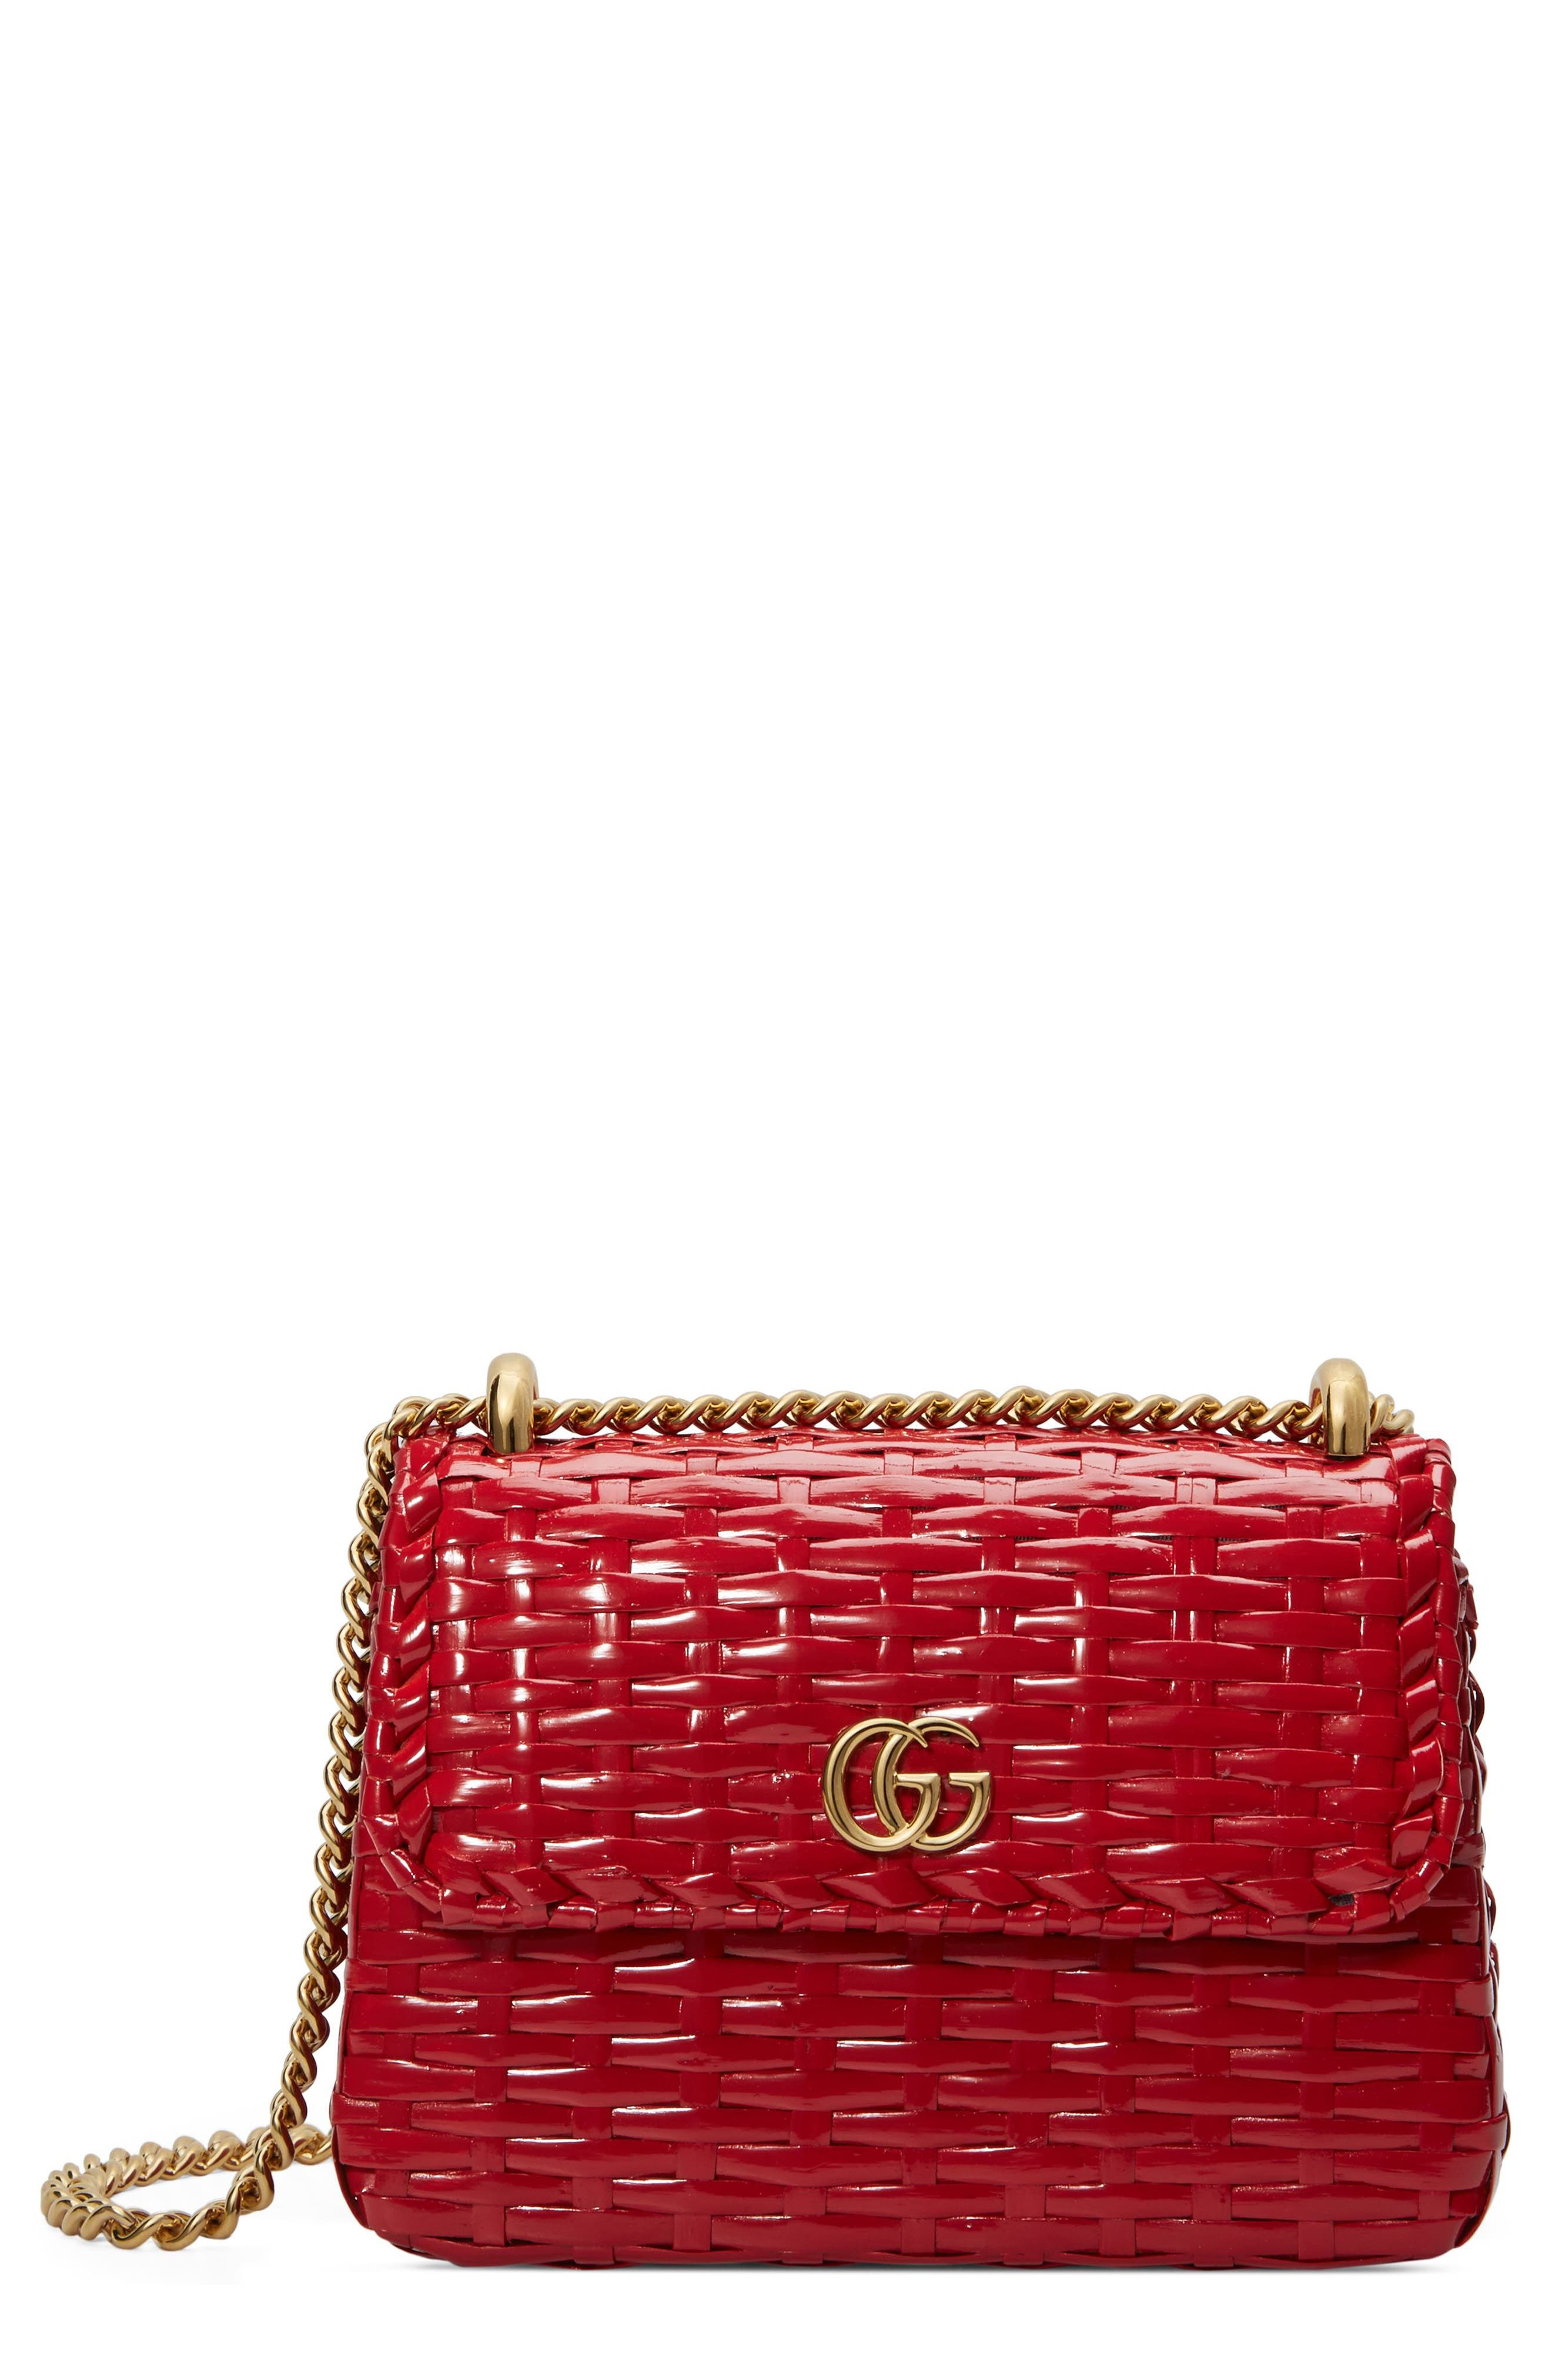 Small Linea Cestino Glazed Wicker Shoulder Bag,                             Main thumbnail 1, color,                             ROSSO